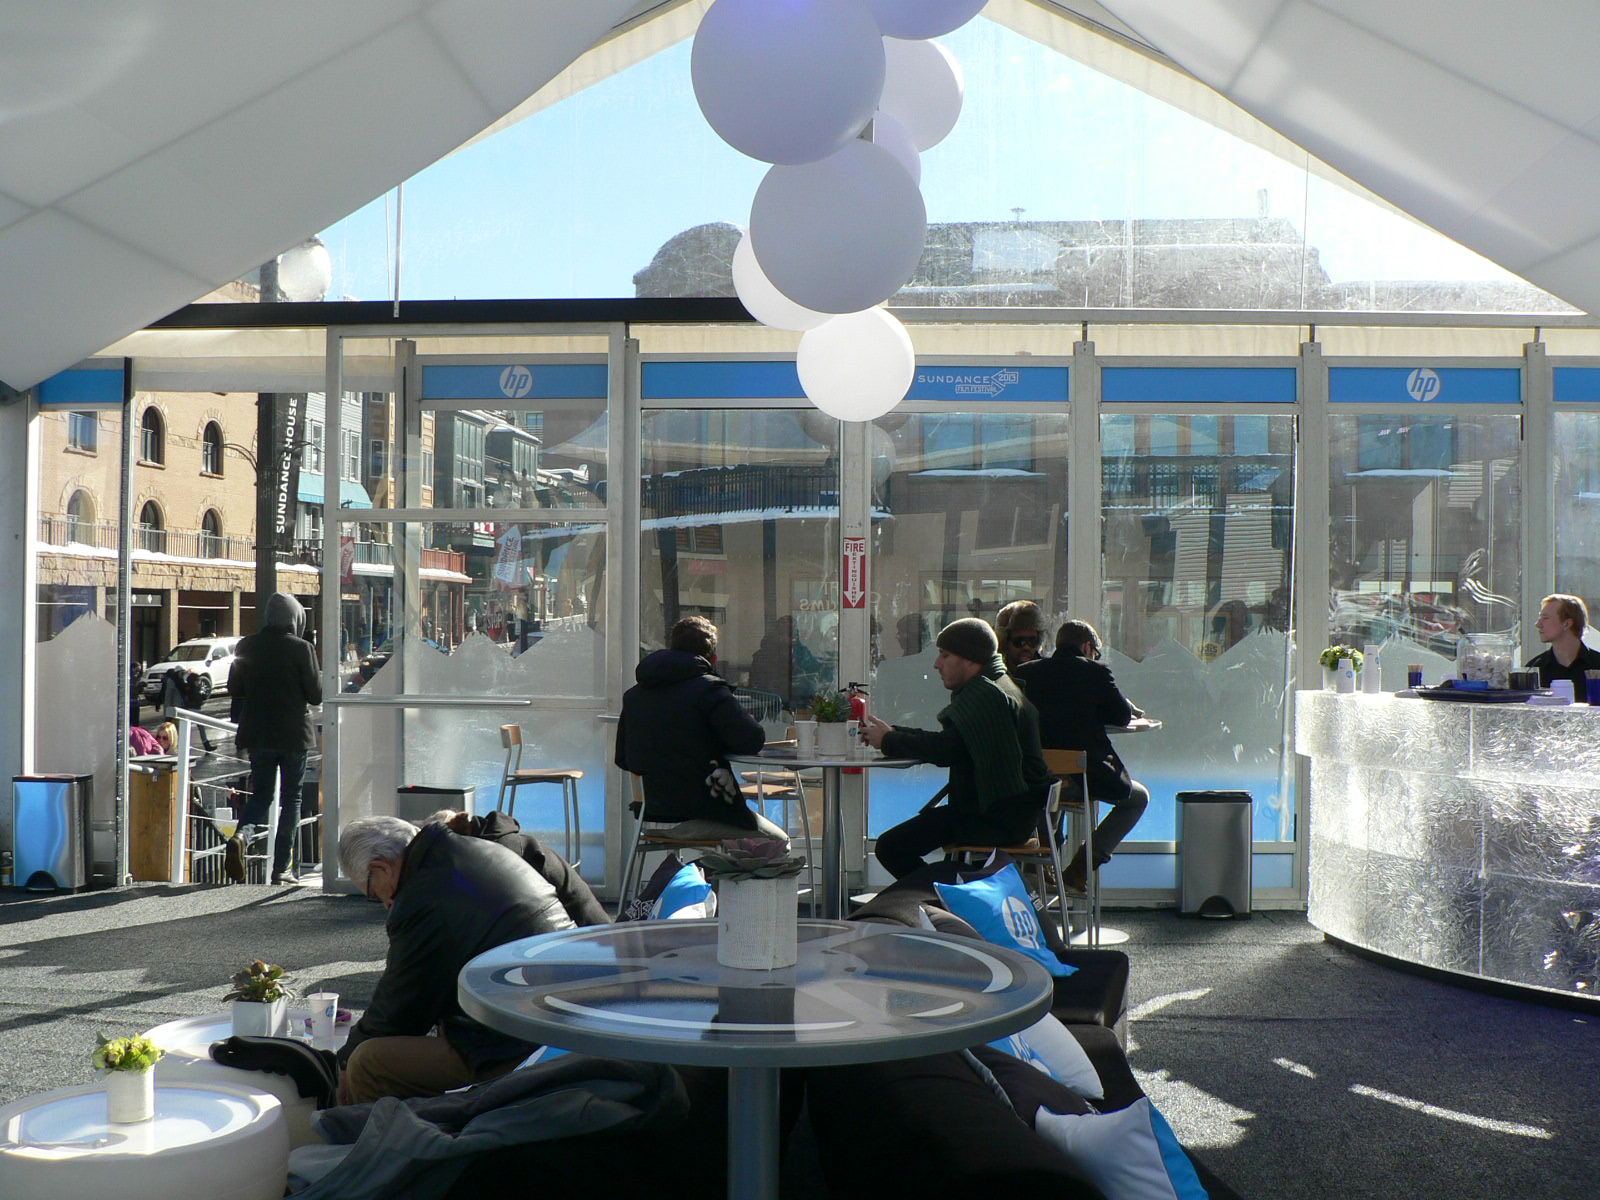 HP Lounge at the 2013 Sundance Film Festival